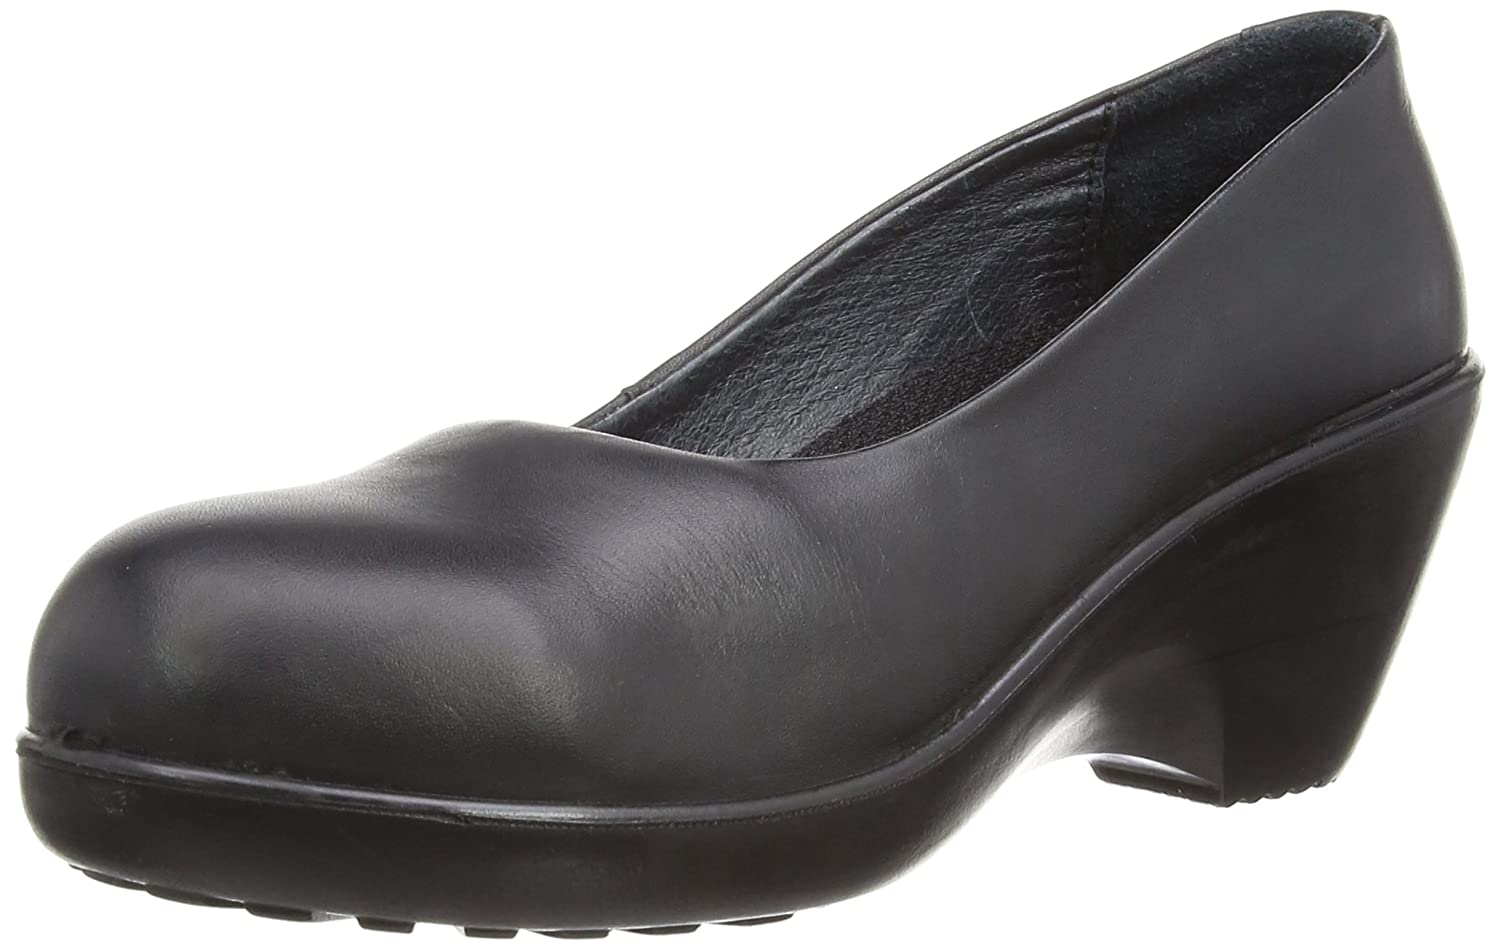 Lavoro Womens Grace Safety Shoes 1133 Black 3 UK, 36 EU: Amazon.co.uk:  Business, Industry & Science